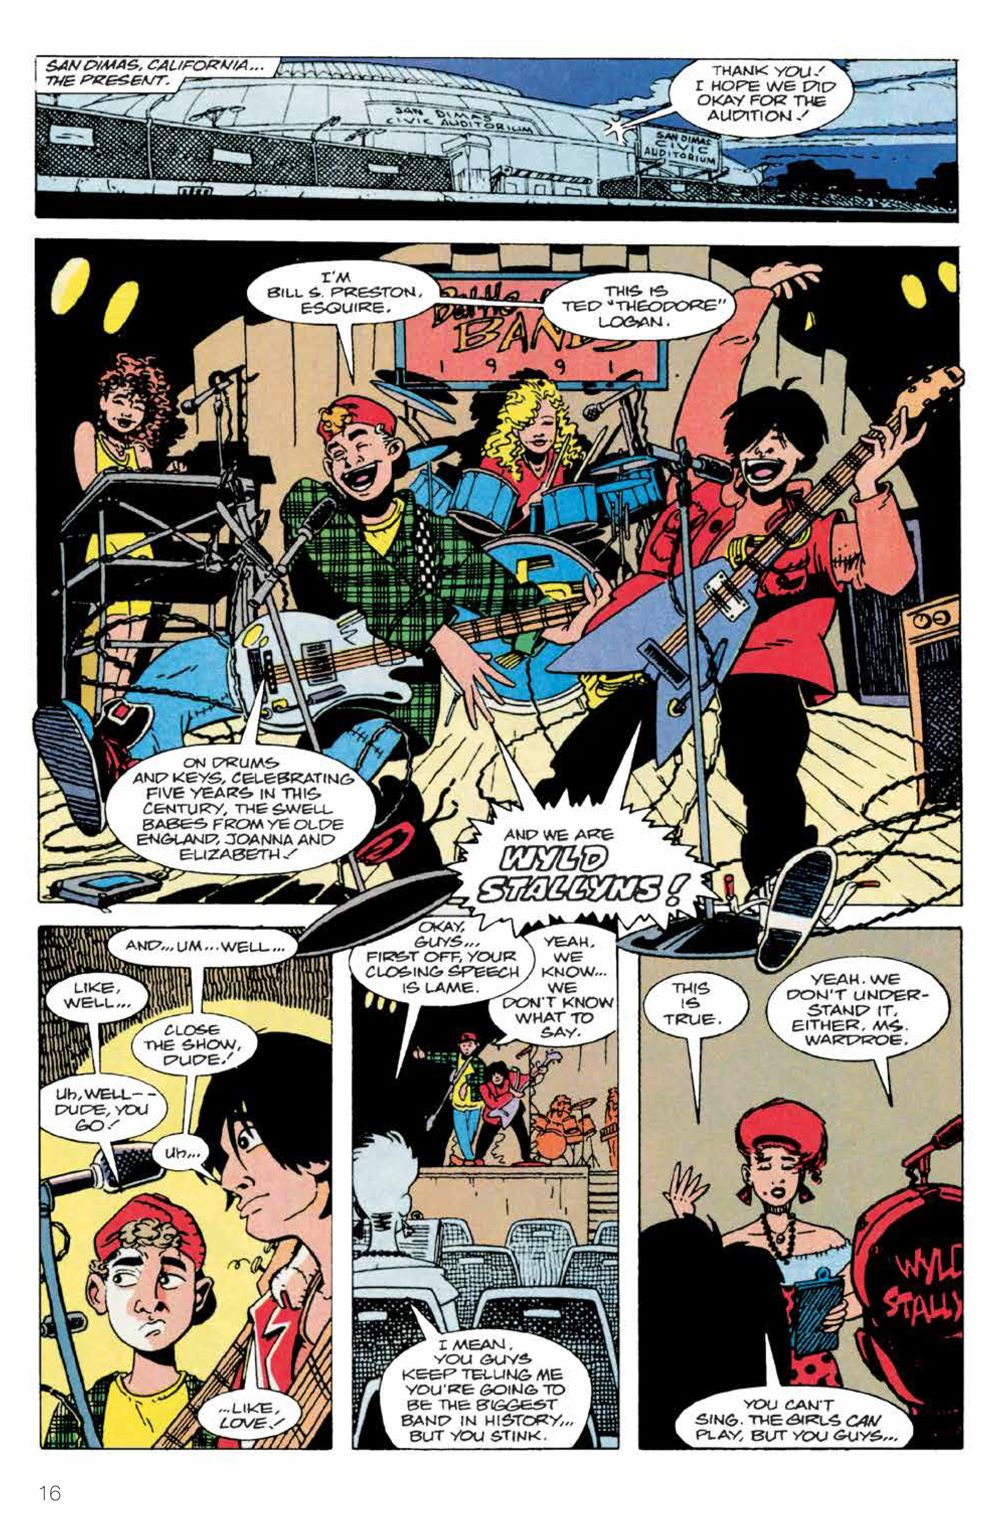 BillTed_Archive_SC_PRESS_18-1 ComicList Previews: BILL AND TED'S EXCELLENT COMIC BOOK ARCHIVE TP